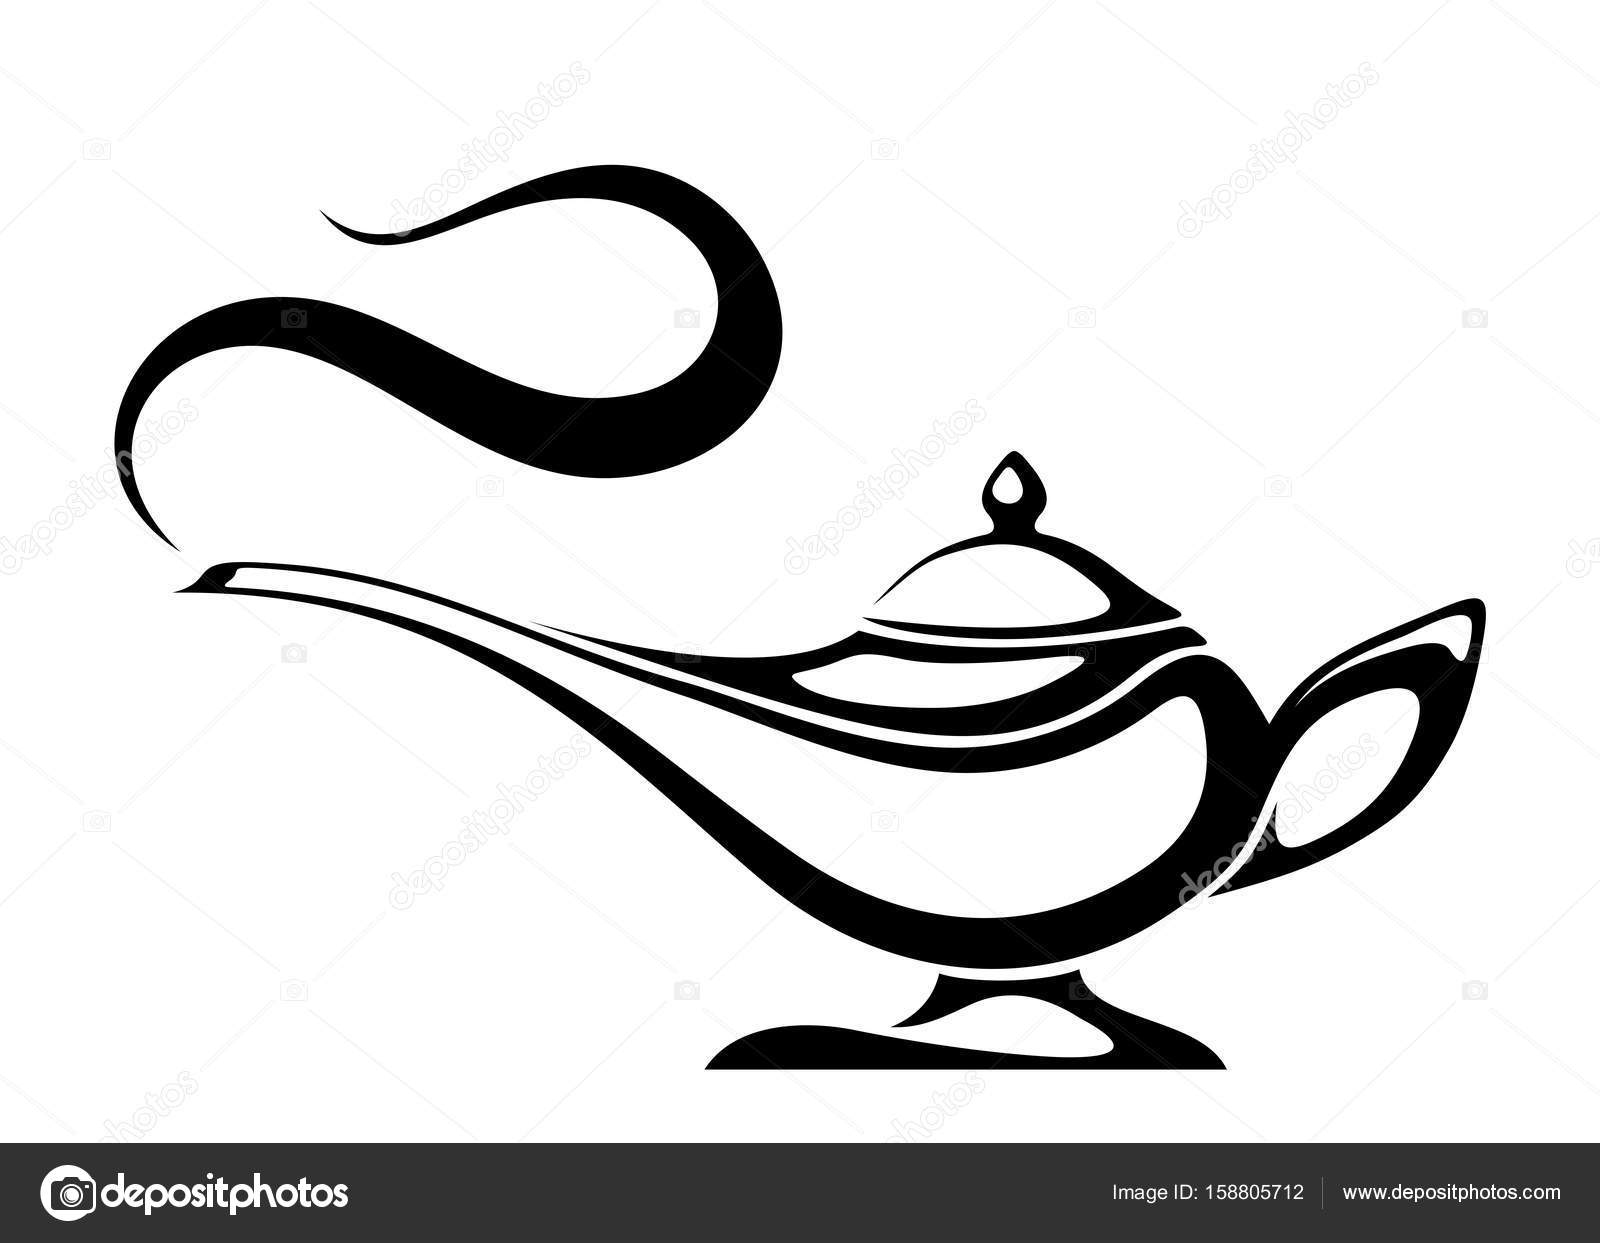 Genie lamp silhouette Stock Vectors, Royalty Free Genie lamp ... for Magic Lamp Drawing  29dqh